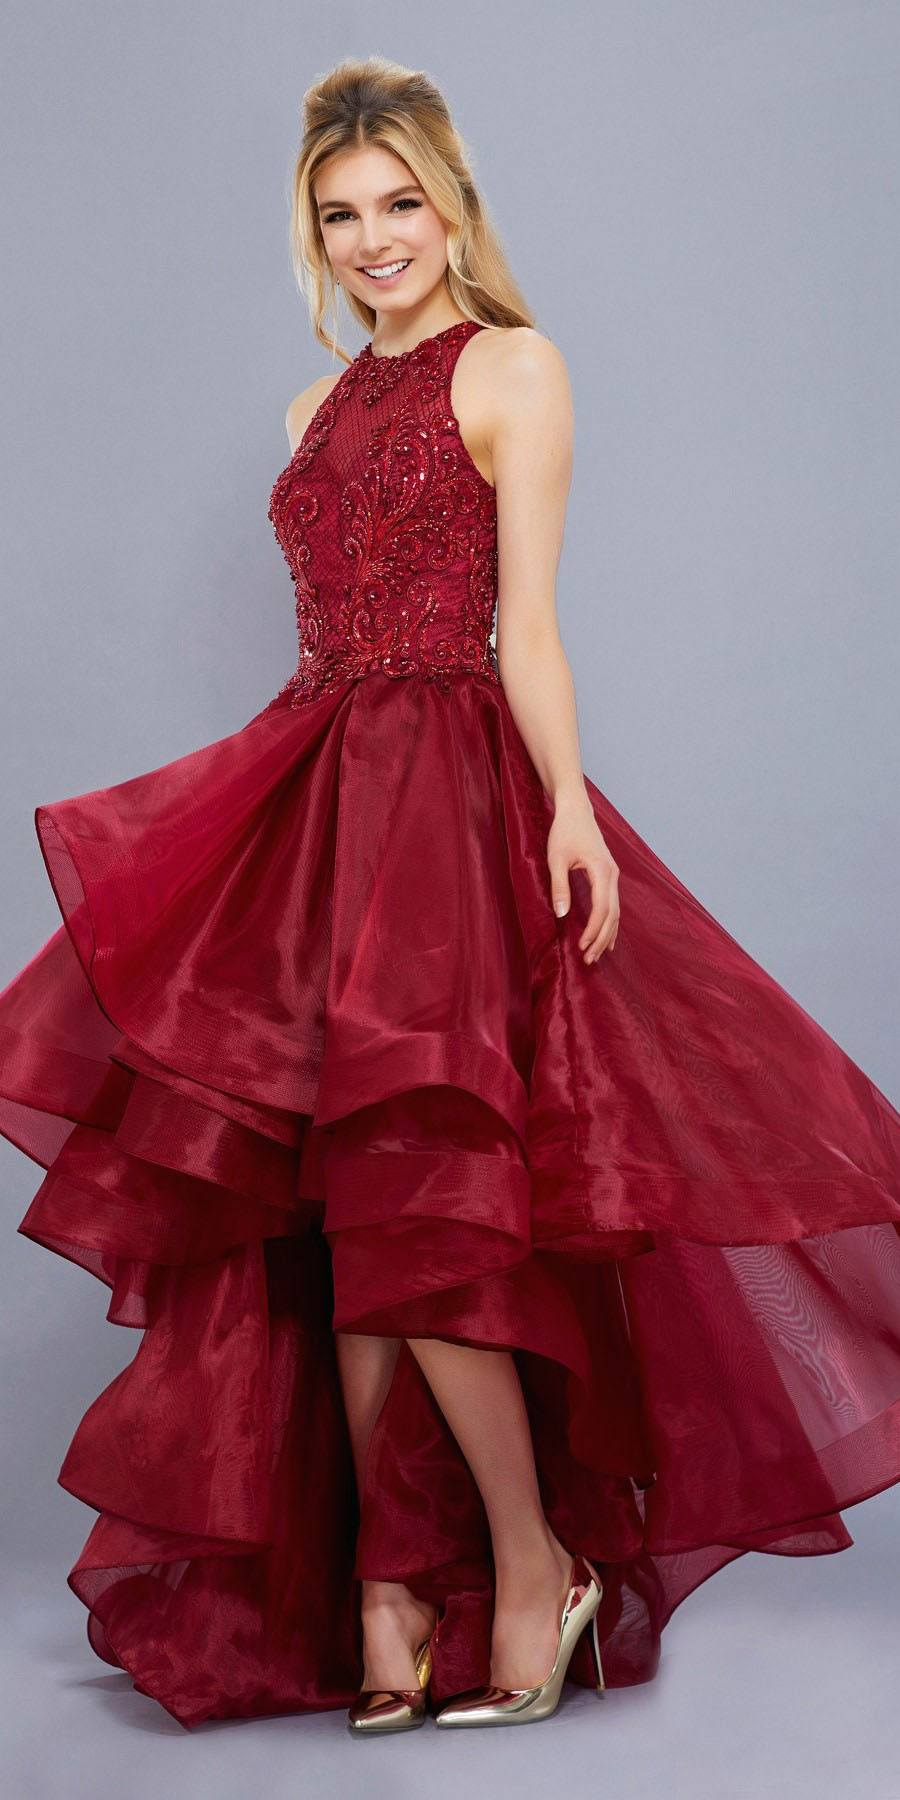 7c5420031ff Red High-Low Prom Dress with Bead Applique Bodice and Train ...